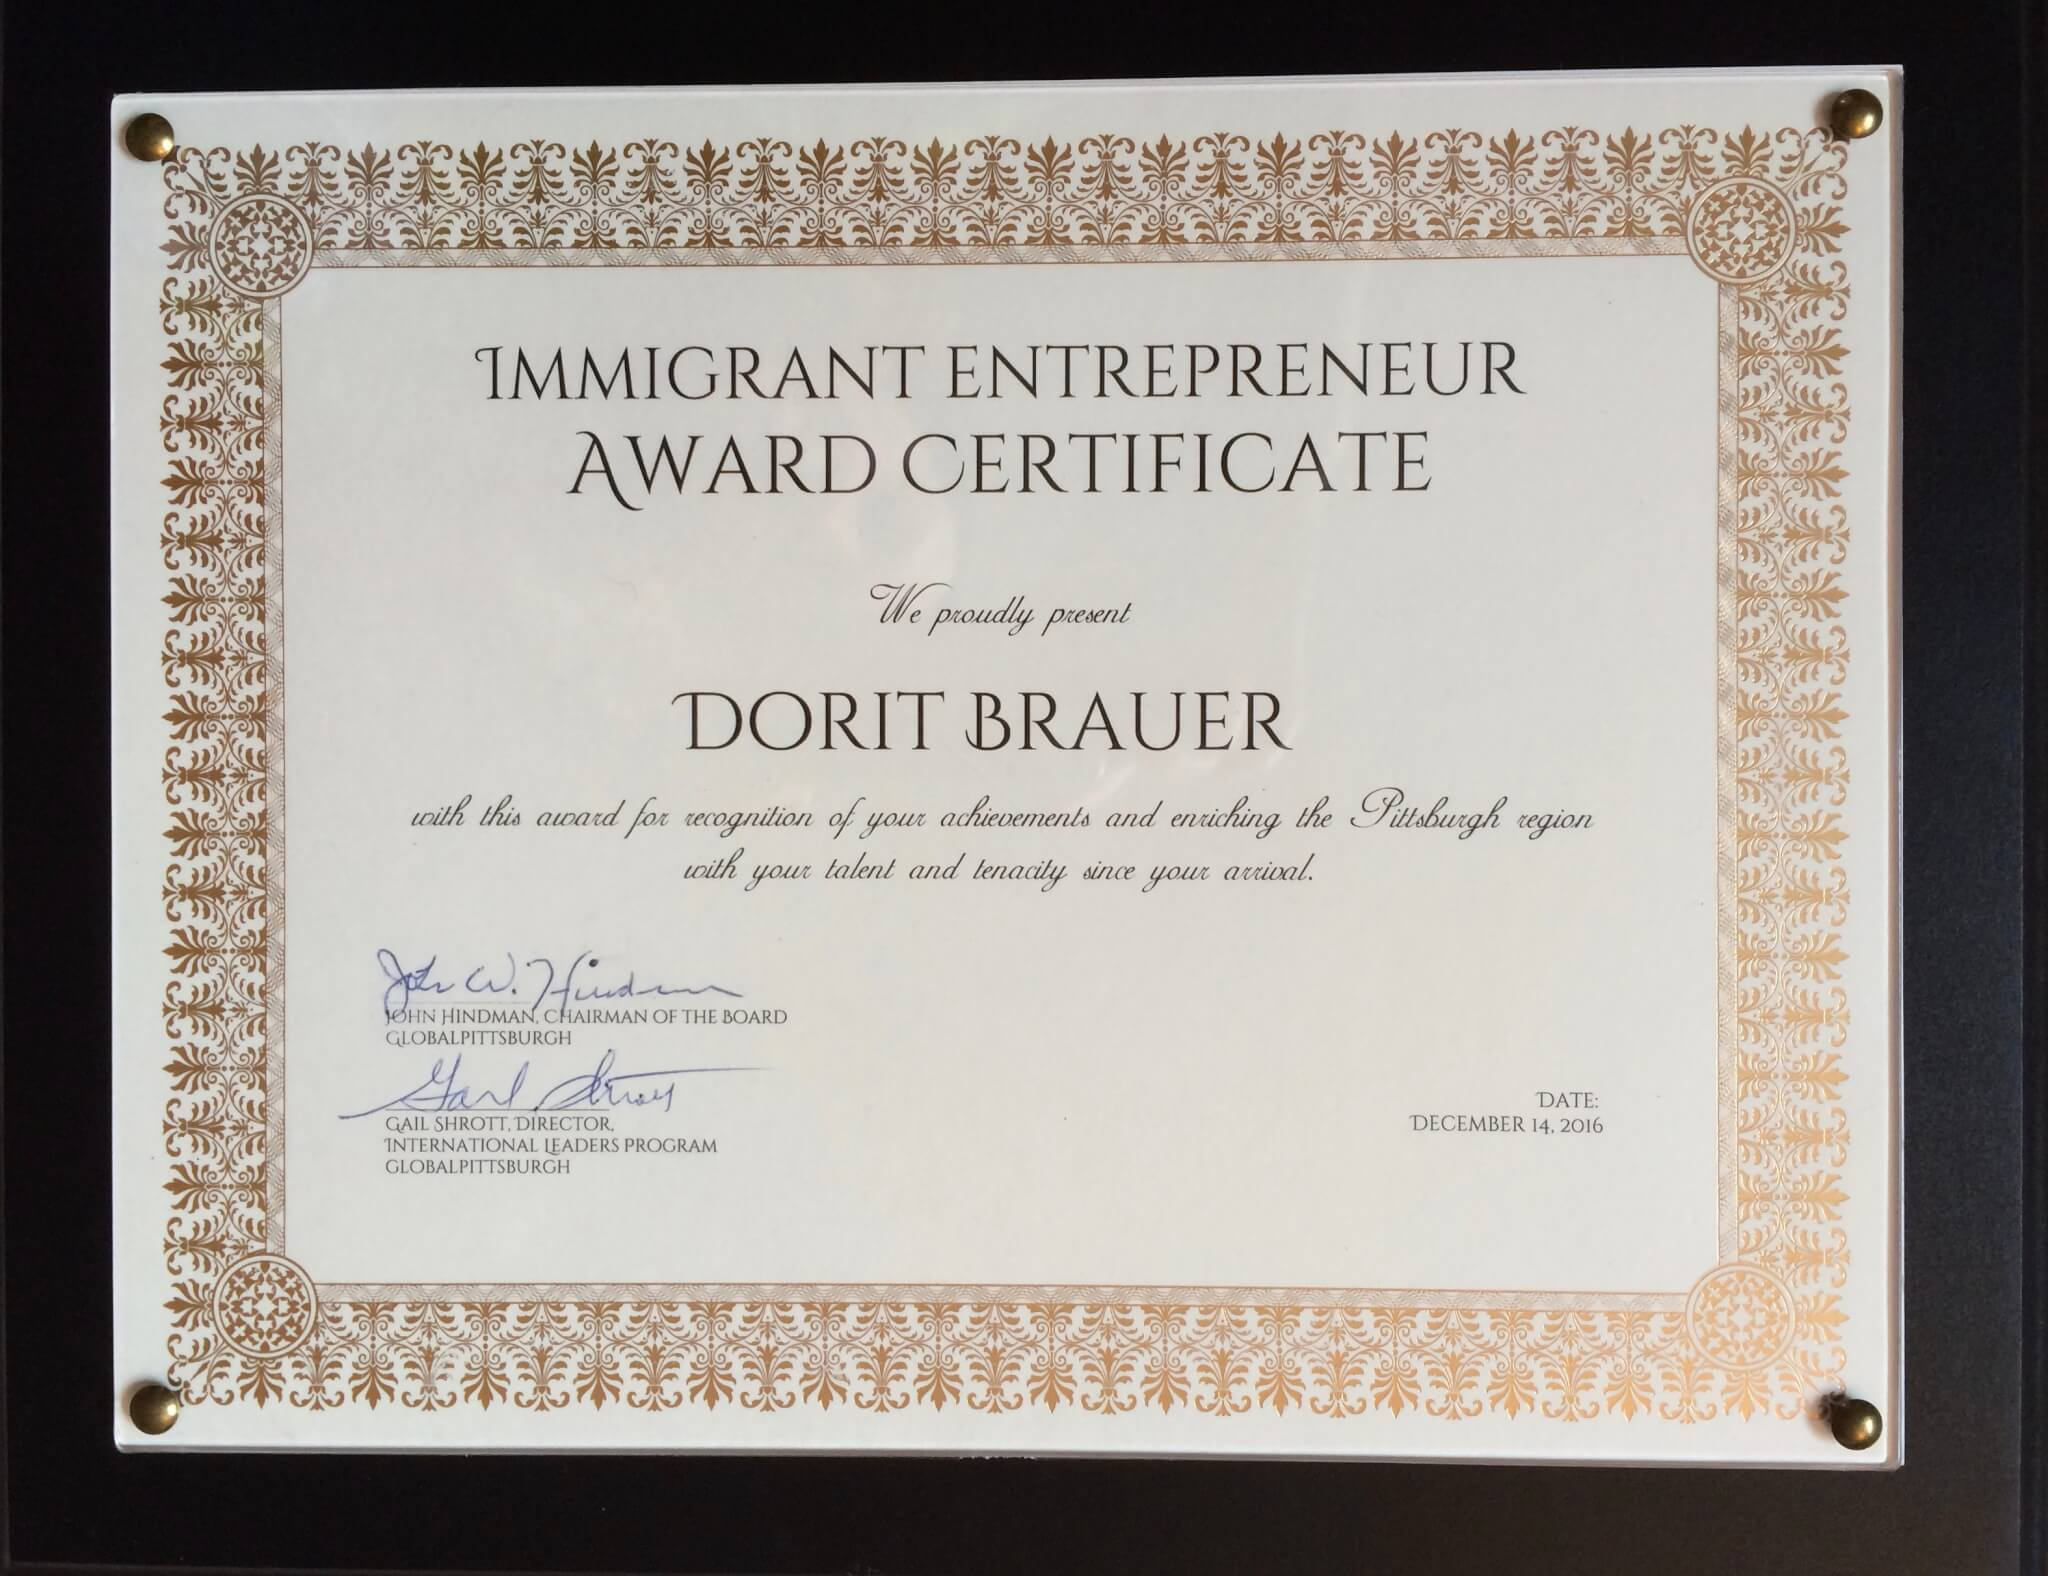 Immigrant Entrepreneur Award